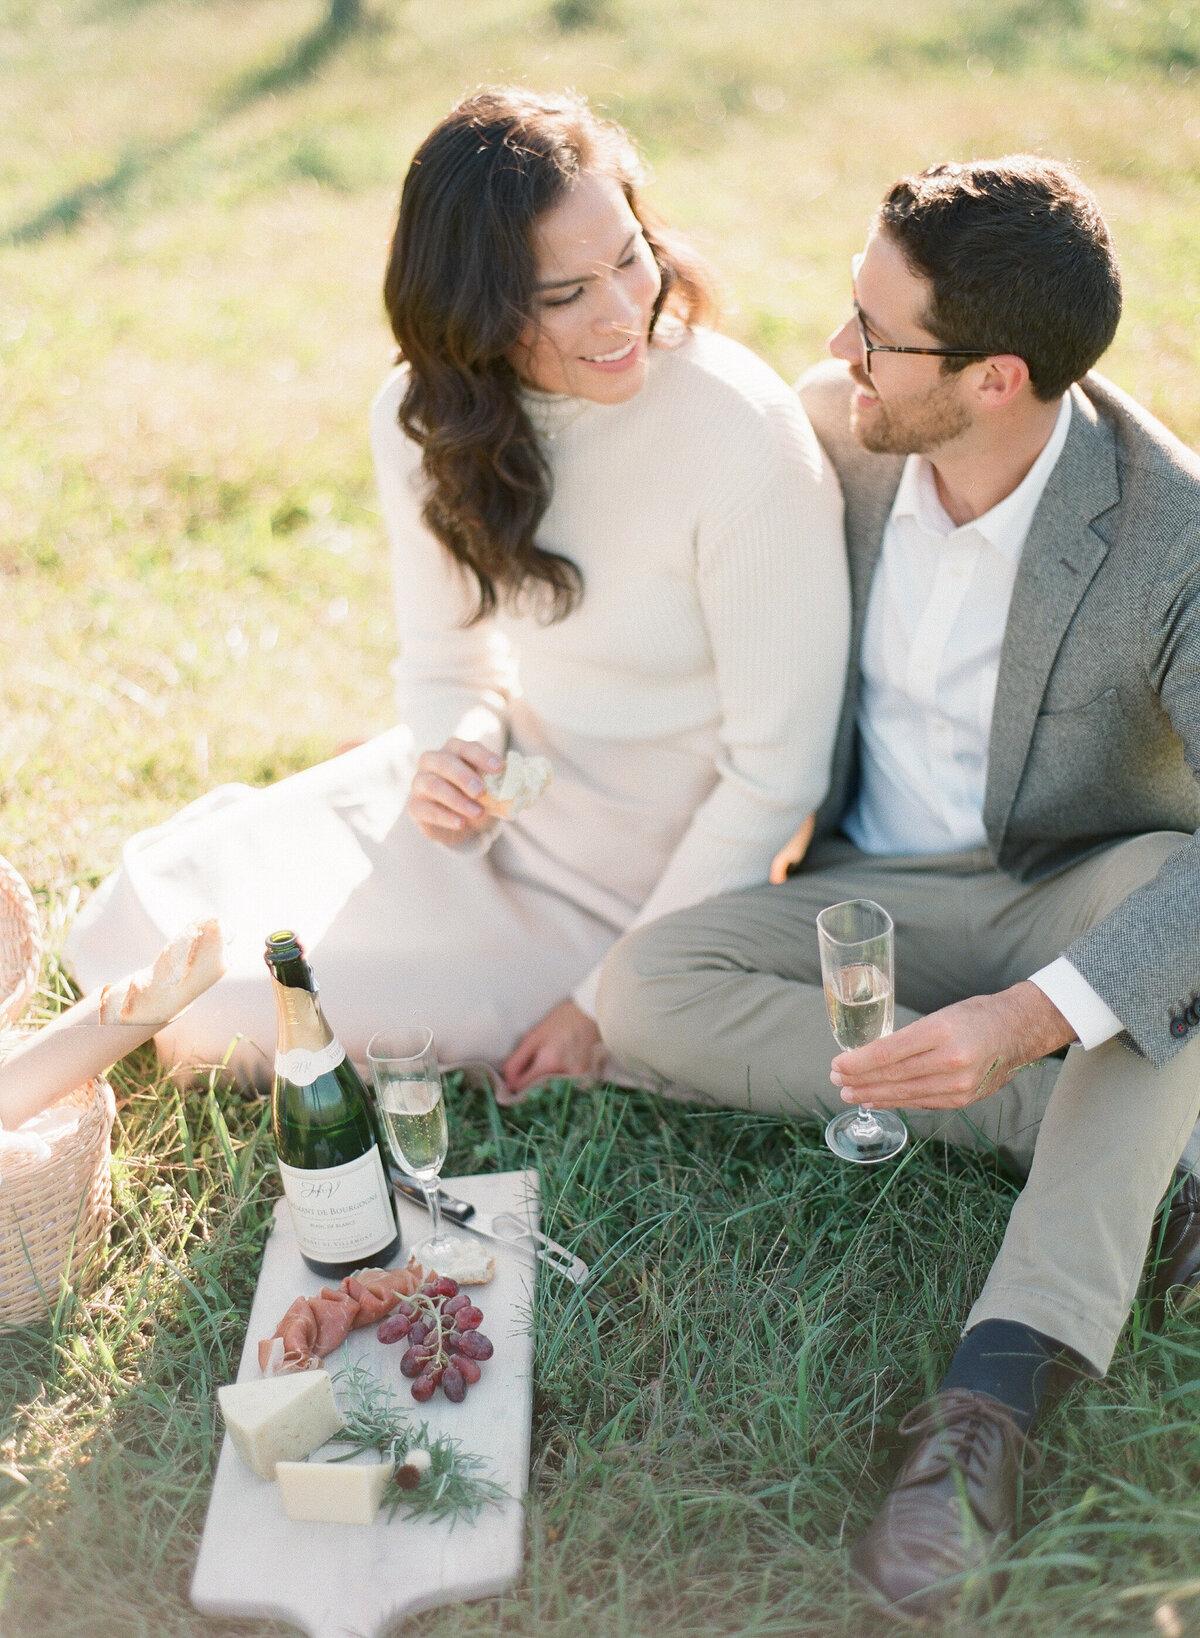 French Vineyard Engagement Photography at The Meadows in Raleigh, NC 16